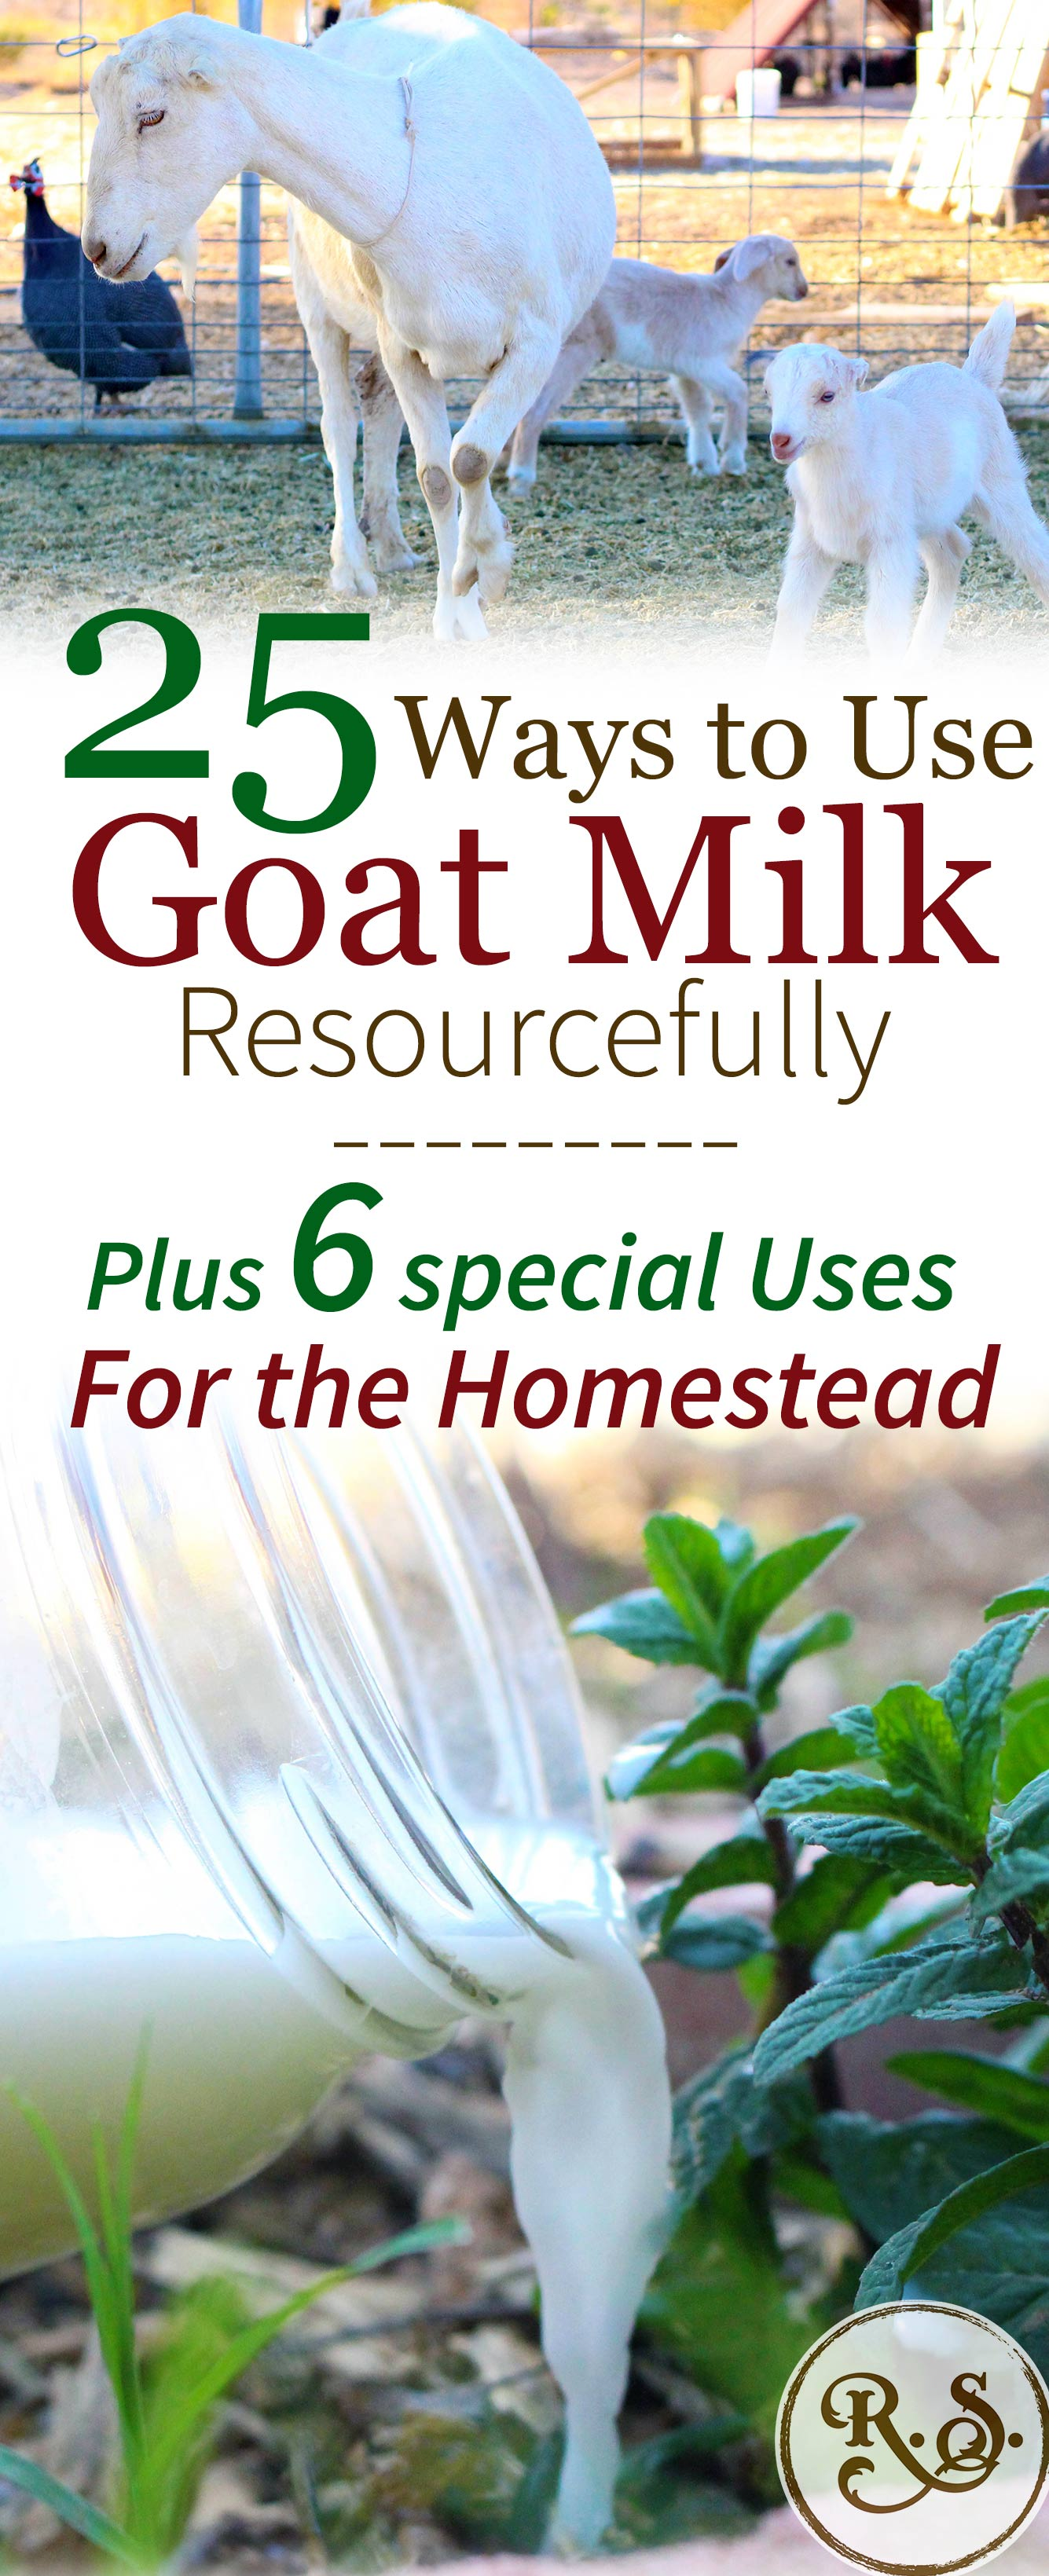 Dairy goat milk is a wonderful resource on the homestead. Once you start milking goats you'll have times when you have way more milk than your family can drink!